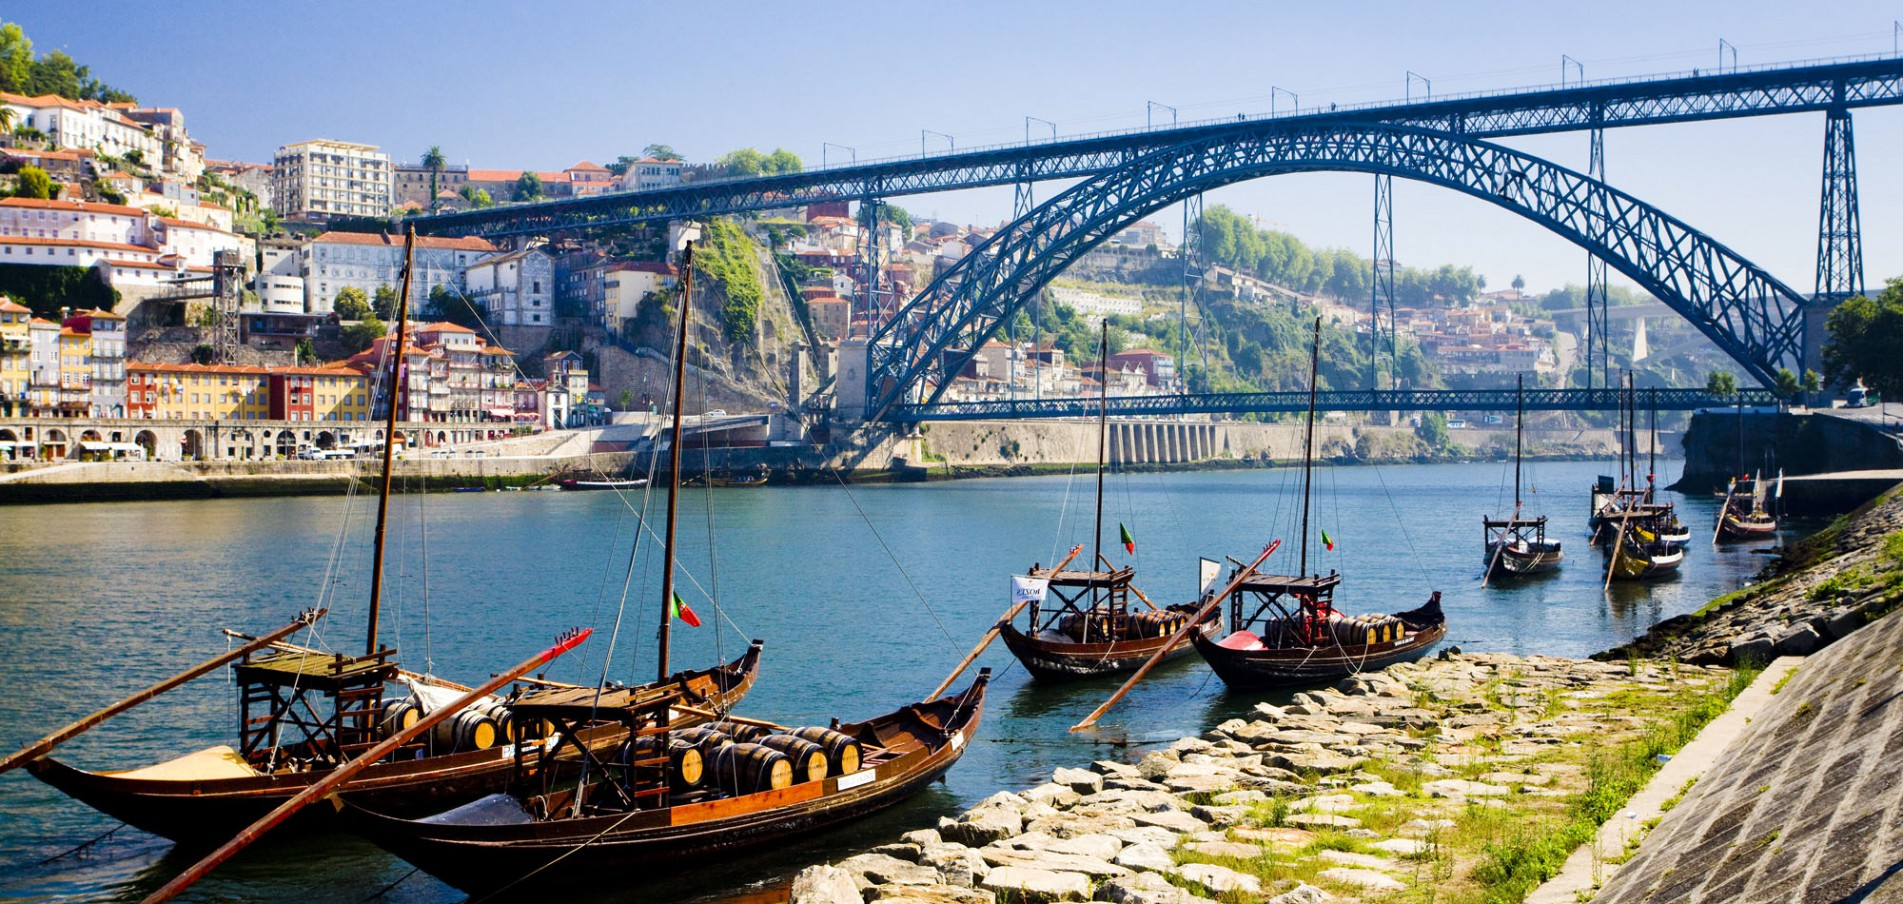 Adult Services In Porto Portugal